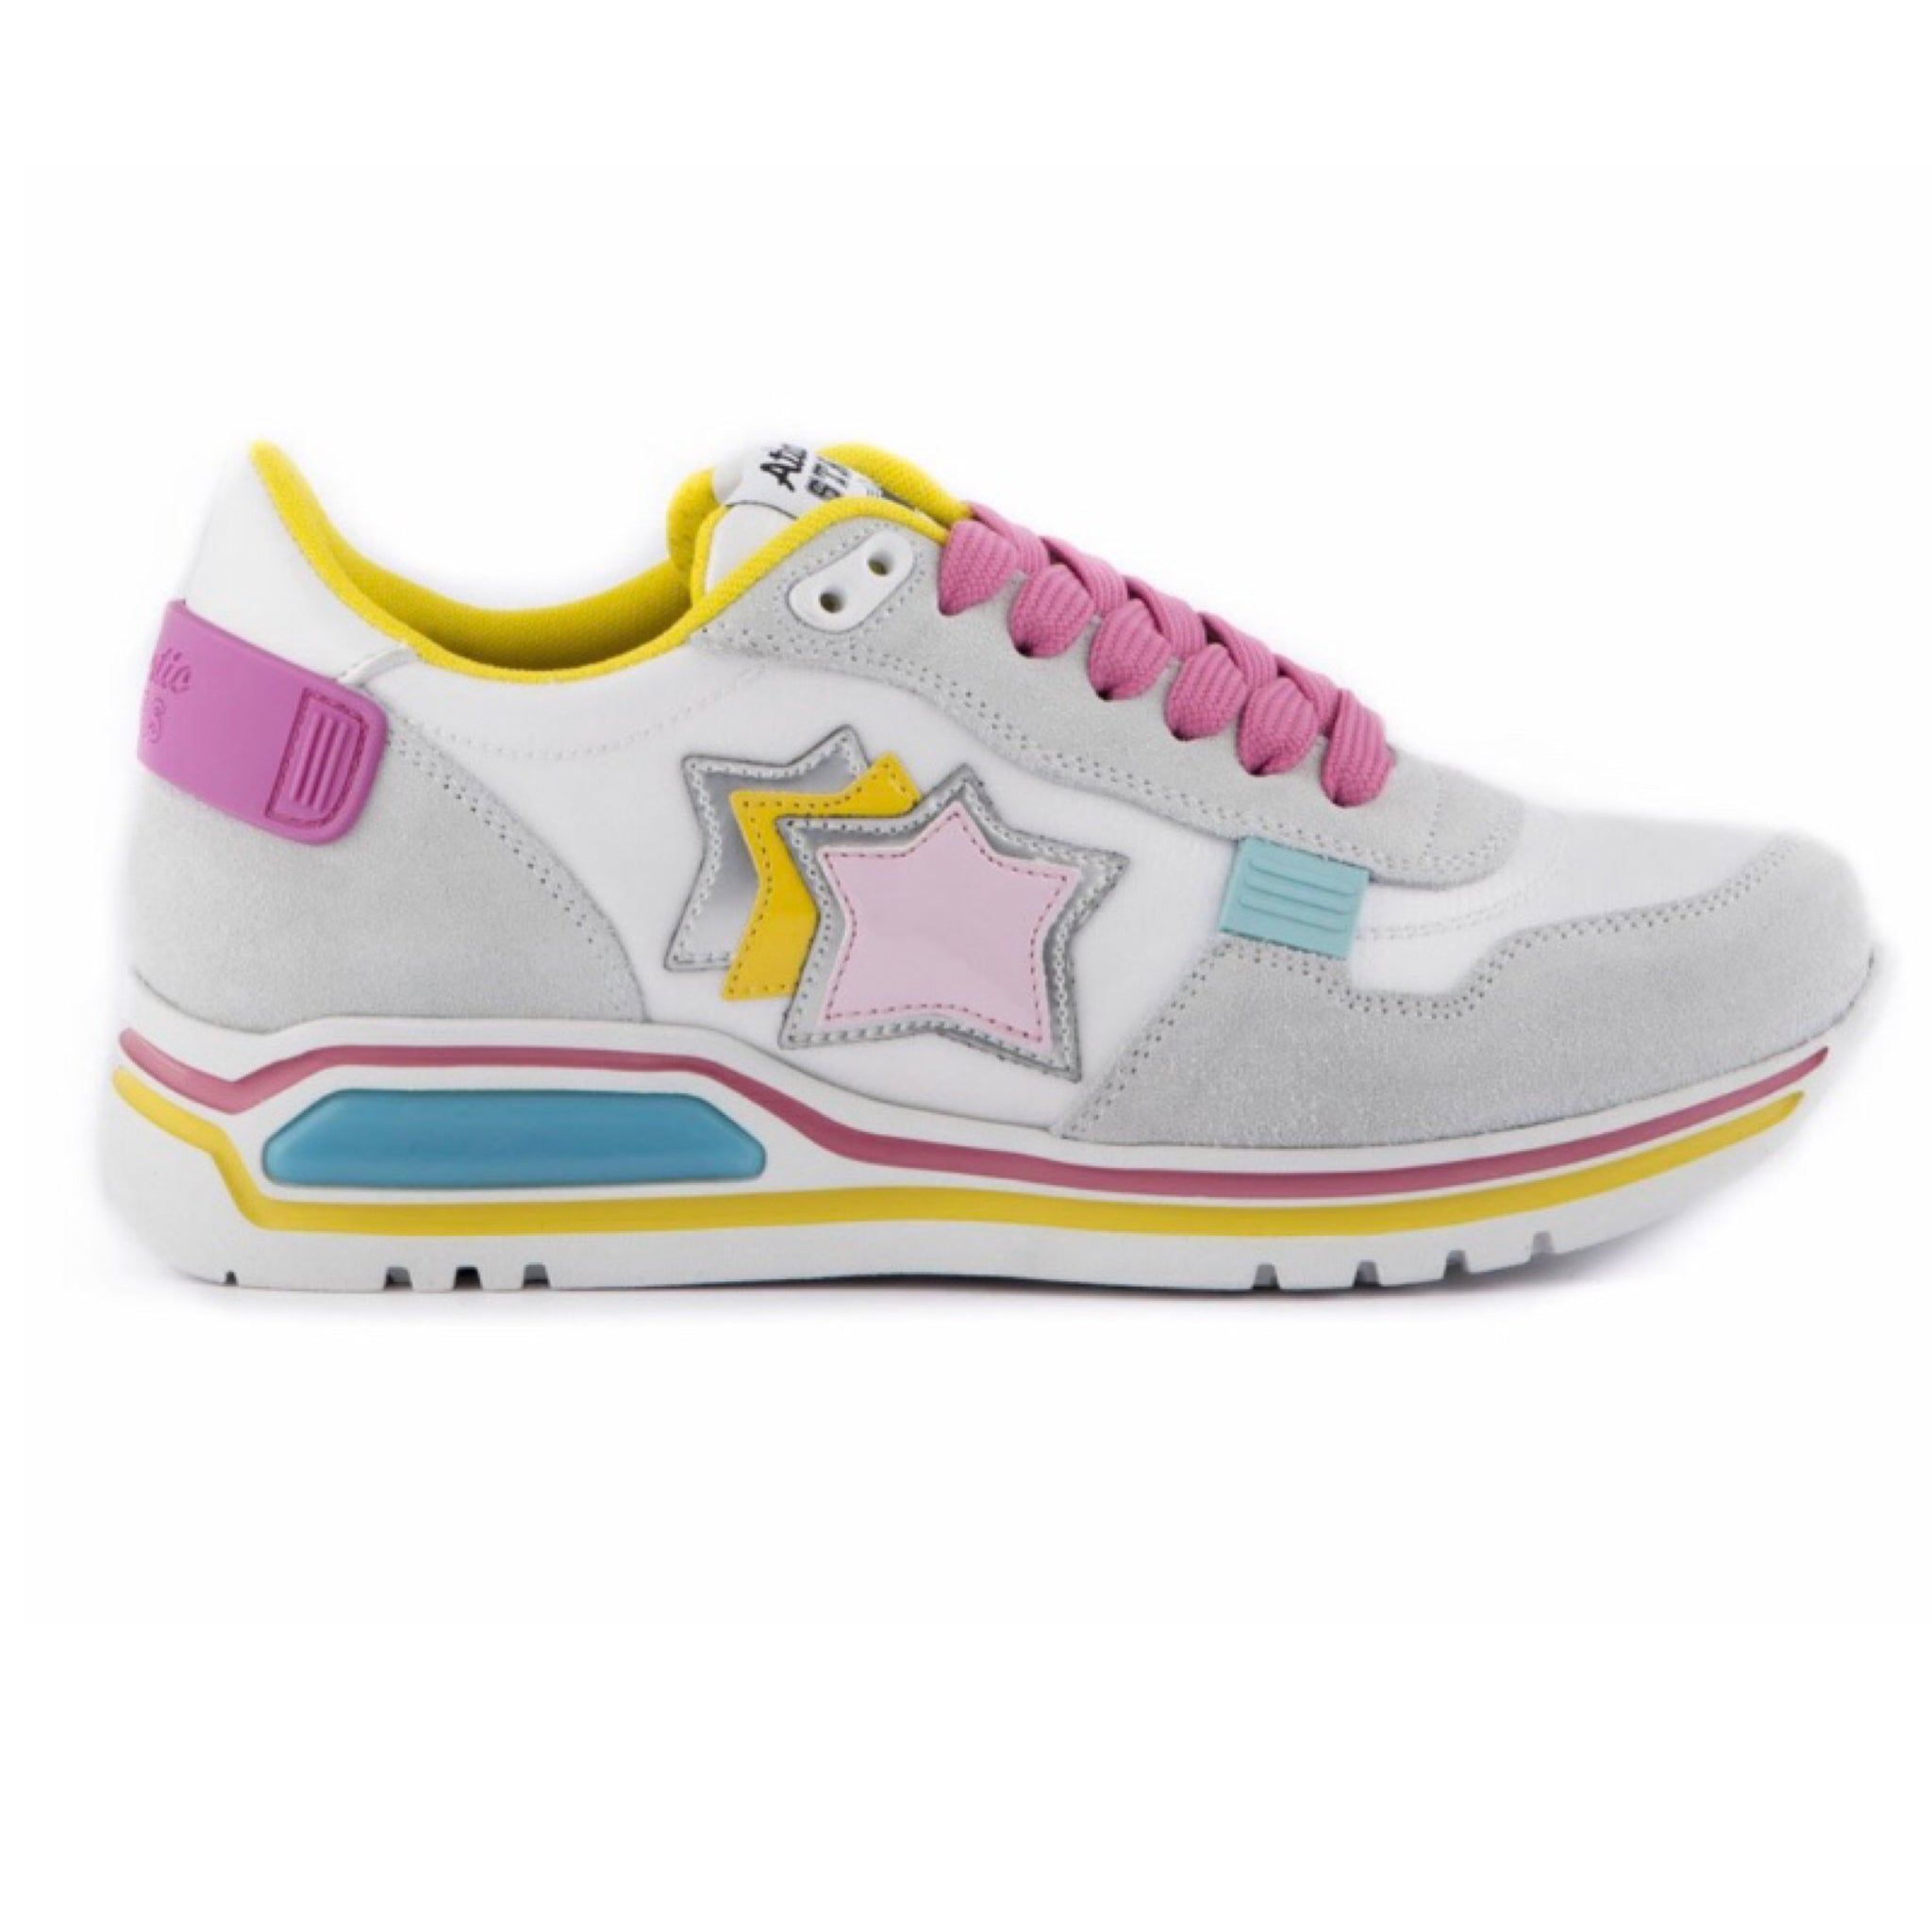 Pink Yellow Blue grey trainers